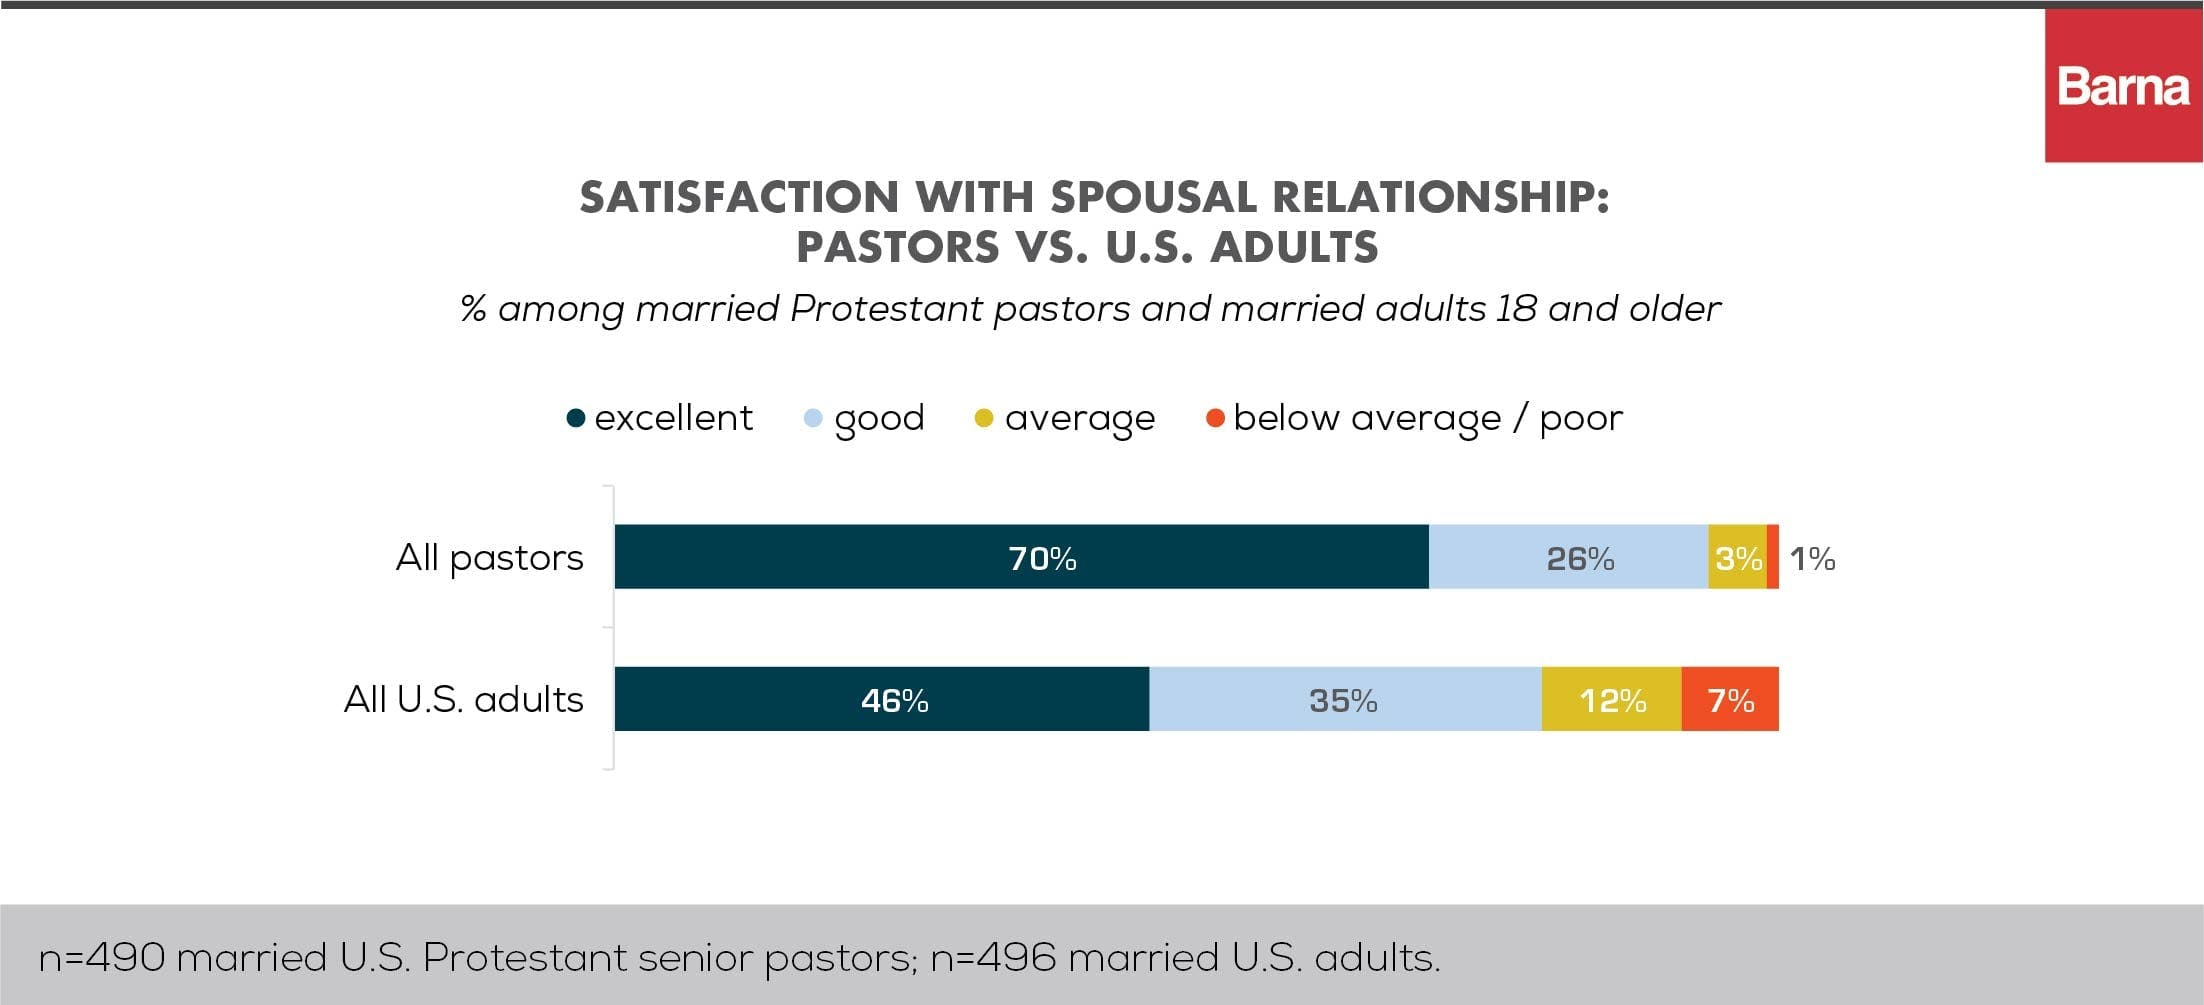 How Healthy Are Pastors' Relationships?